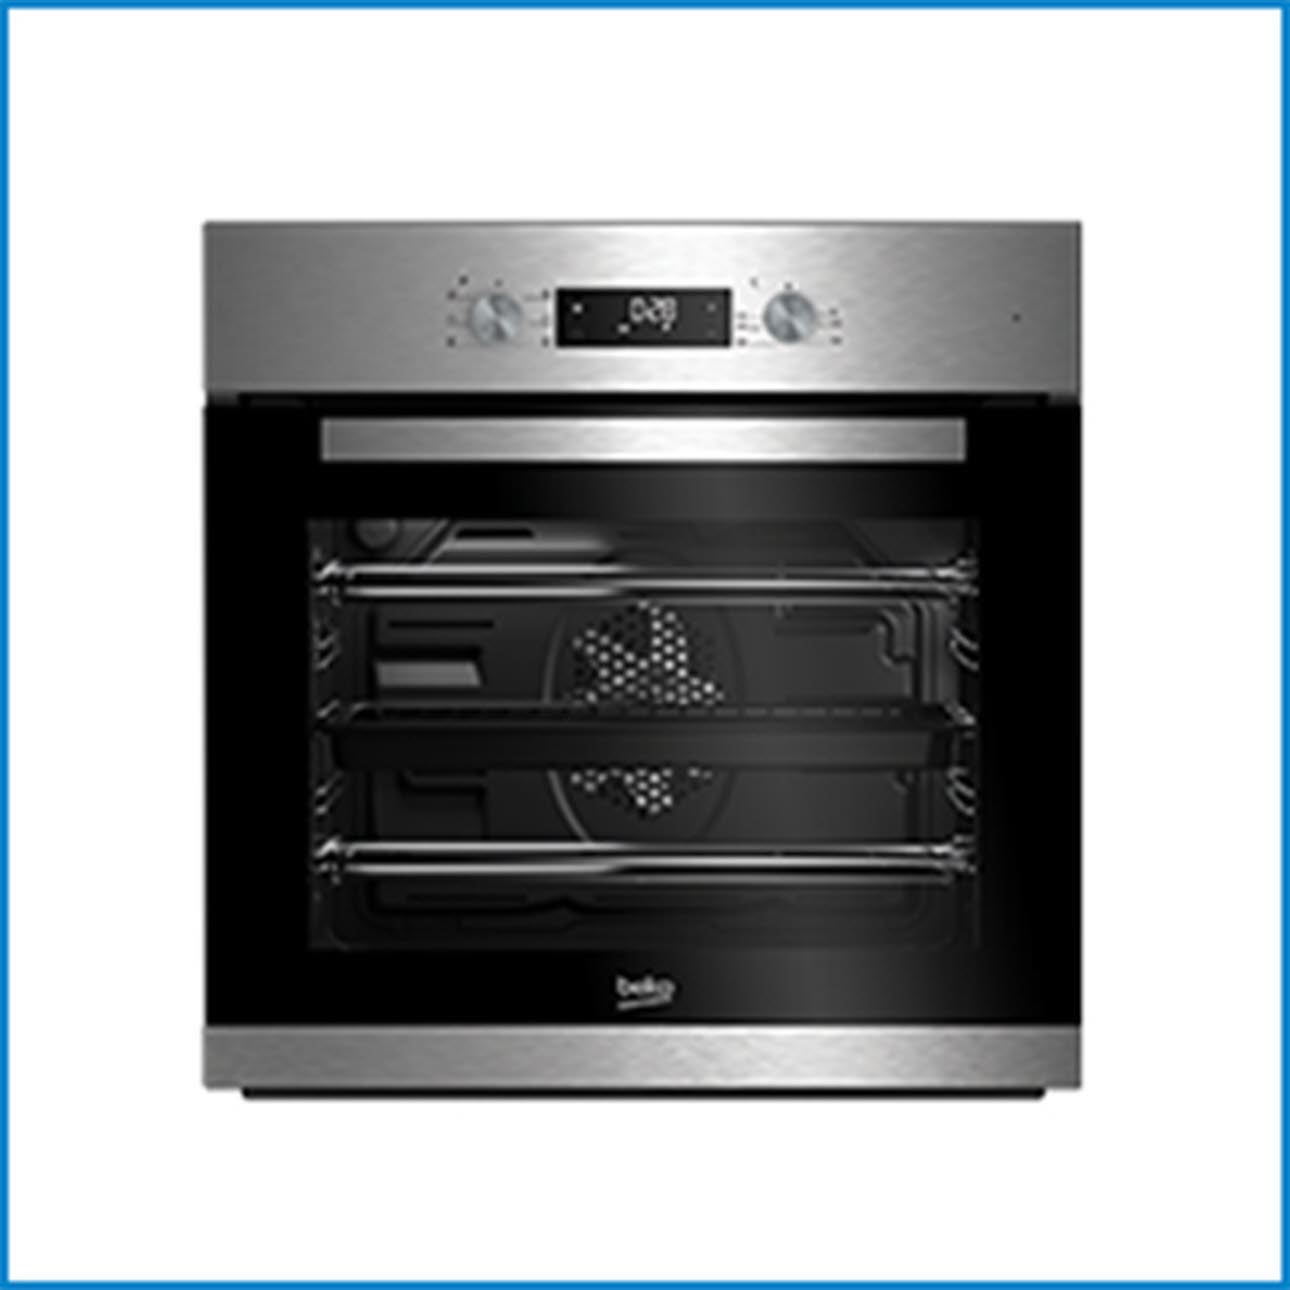 Black & Metallic Beko Oven Front